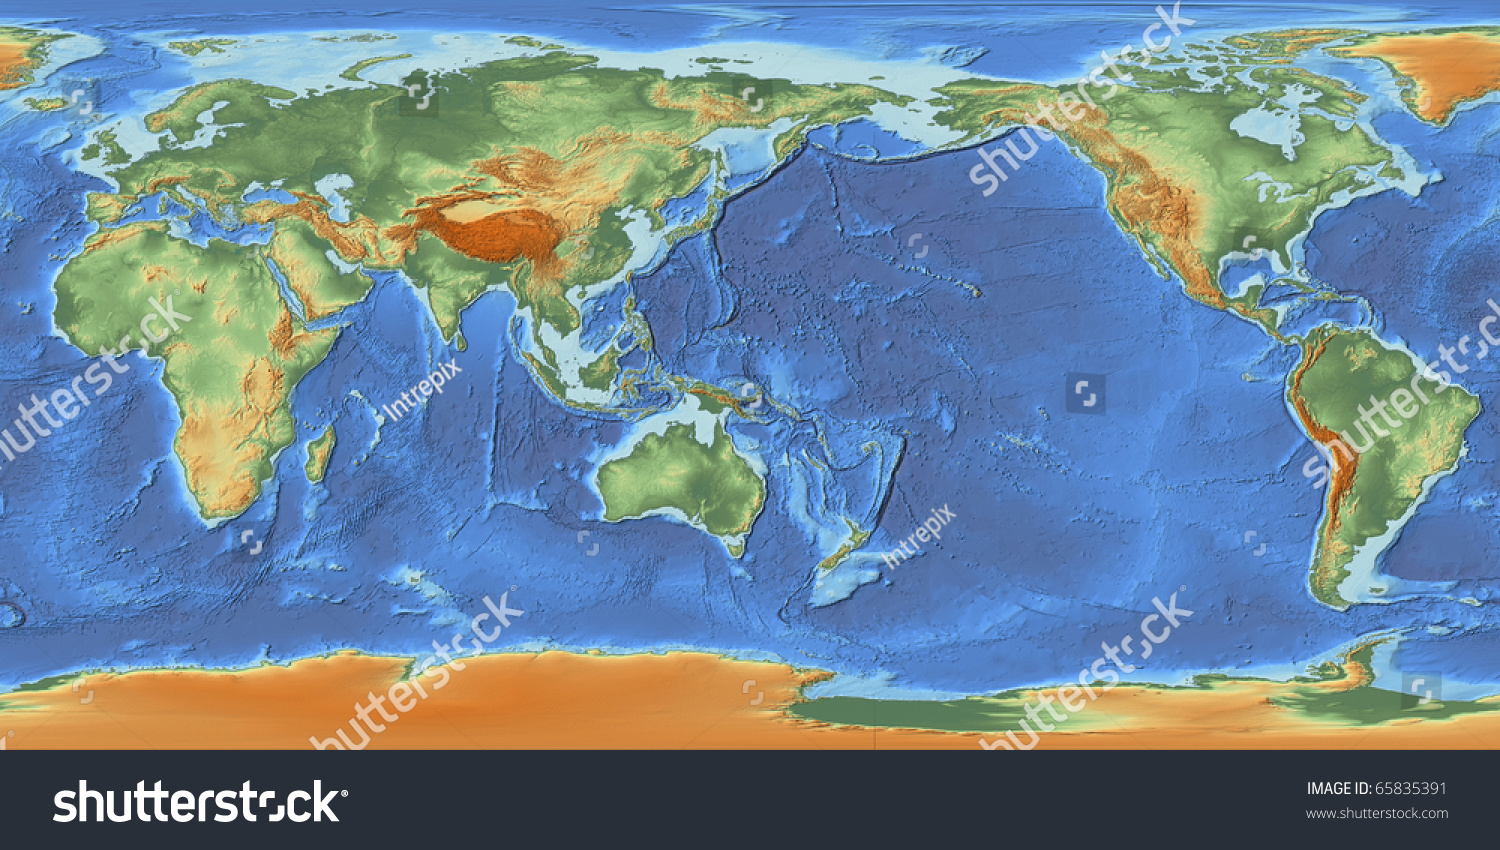 Shaded relief world map centered on stock illustration 65835391 a shaded relief world map centered on 150 e longitude showing land elevation and bathymetry derived gumiabroncs Choice Image